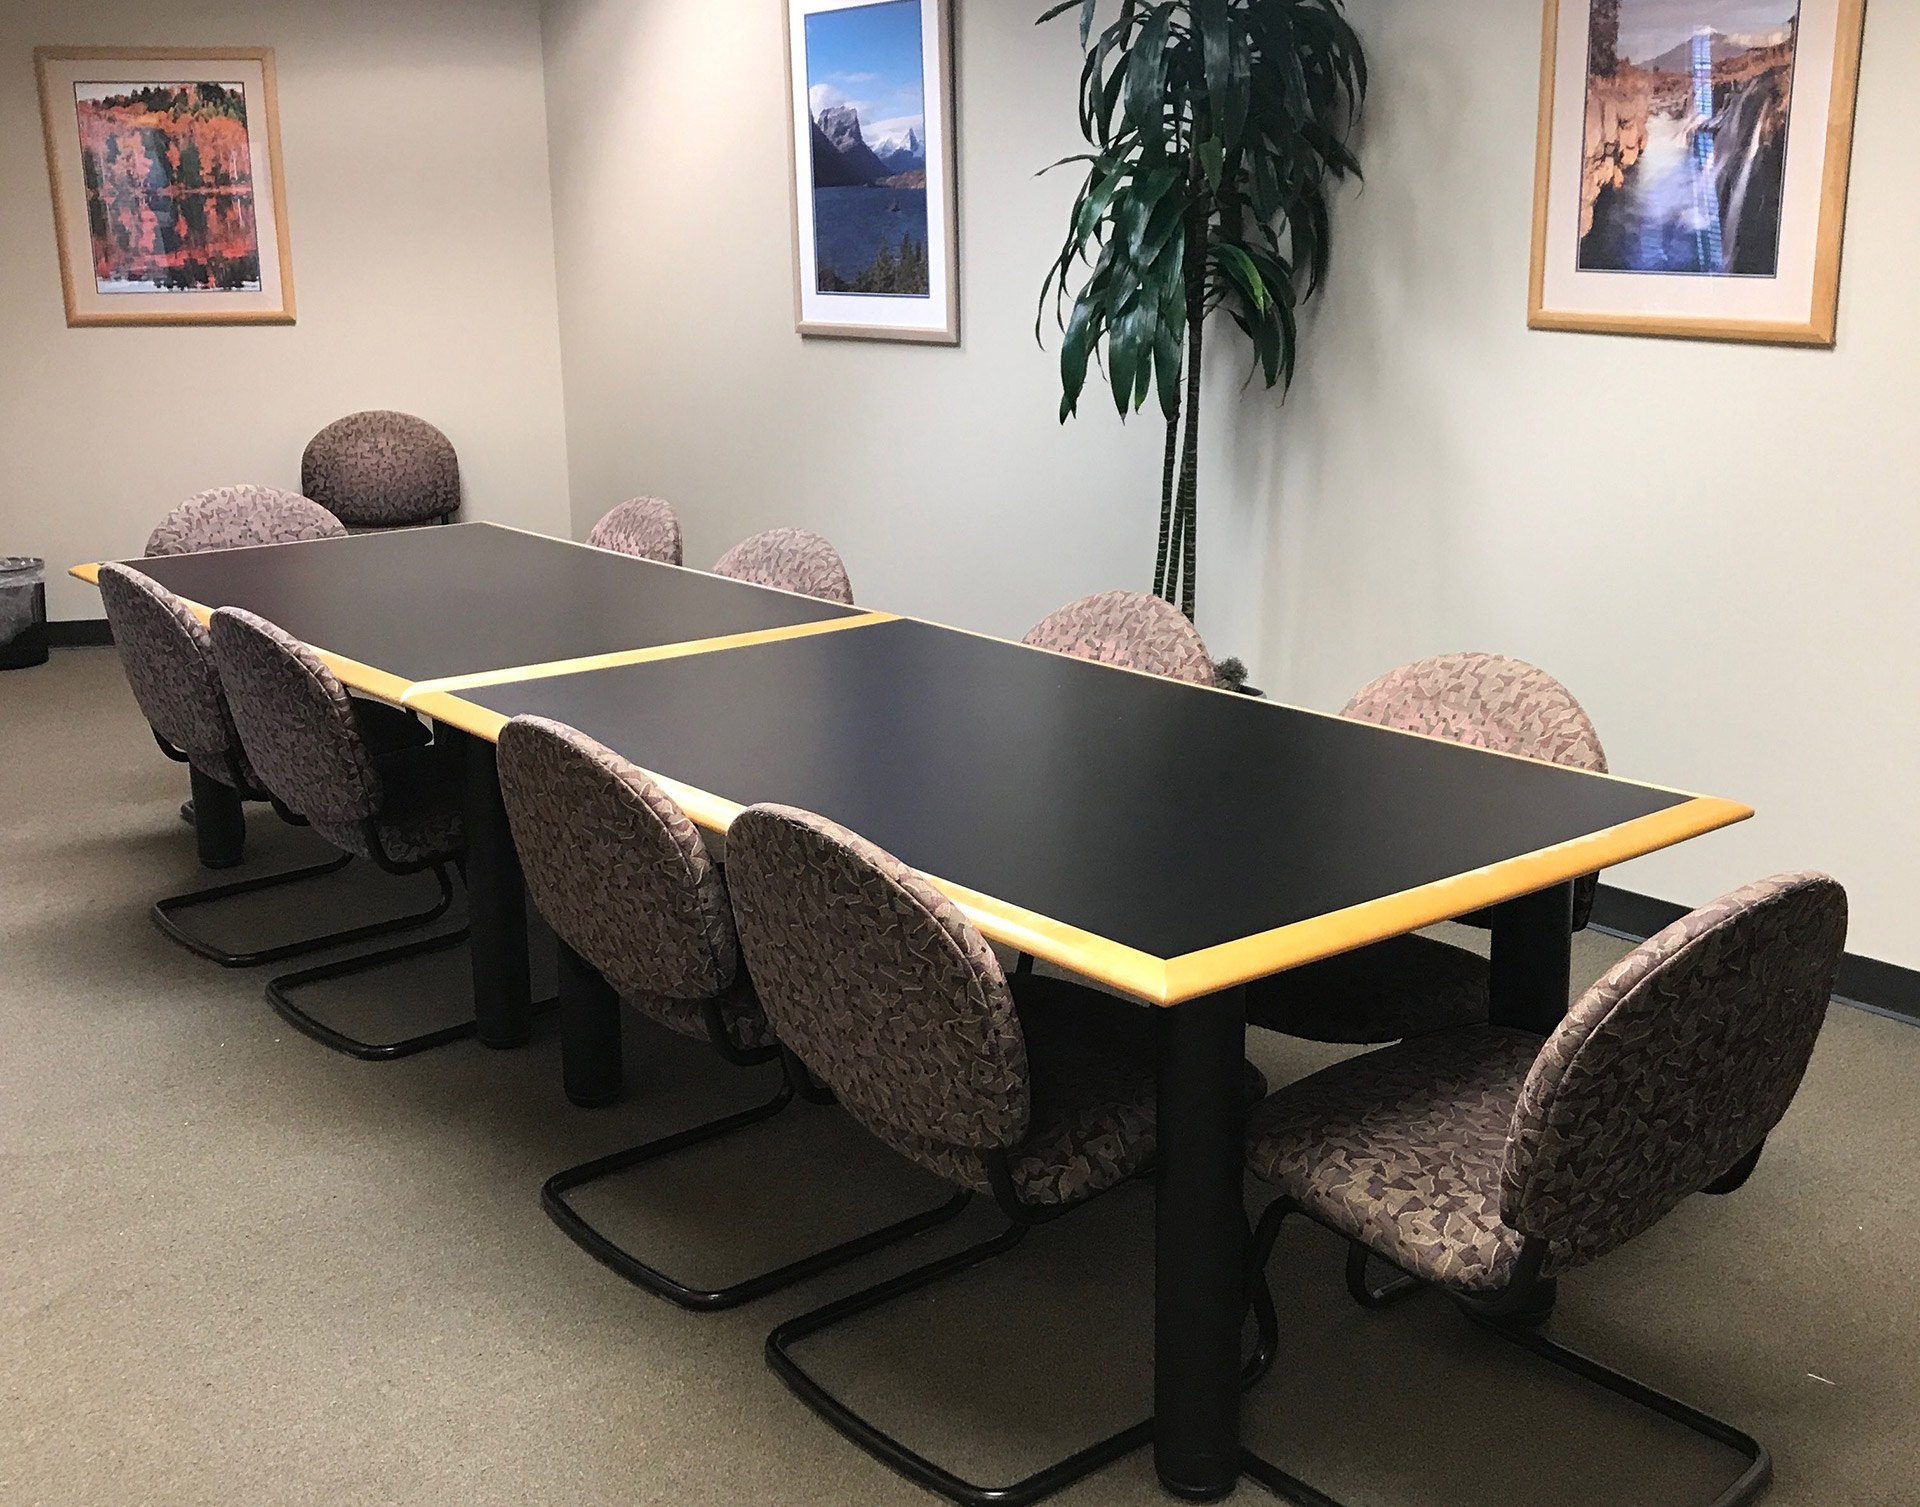 Medium Sized Conference Room for Rent - Virtual Office by Design